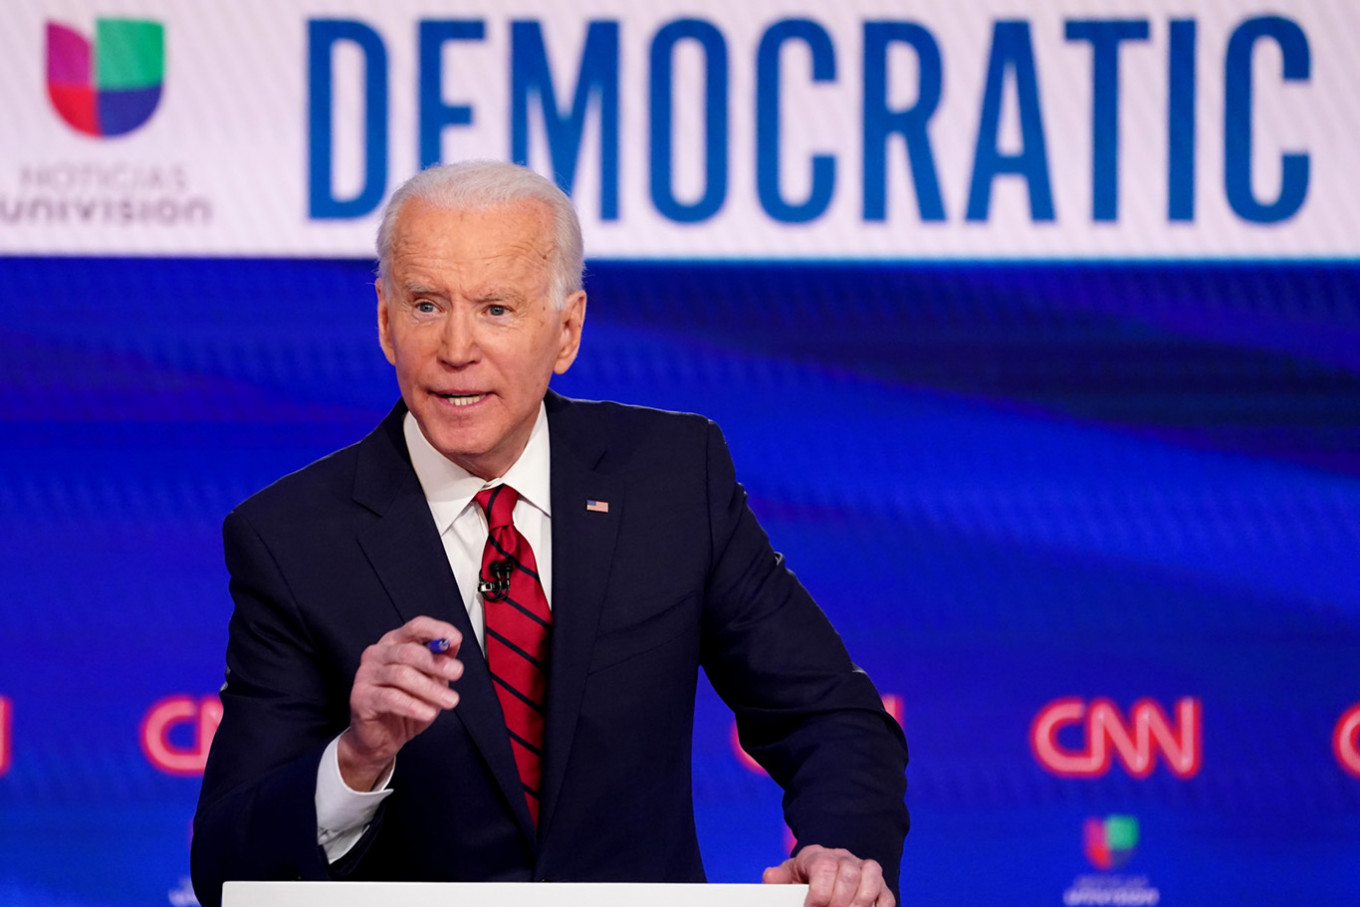 Biden wins big endorsements but gets little air time